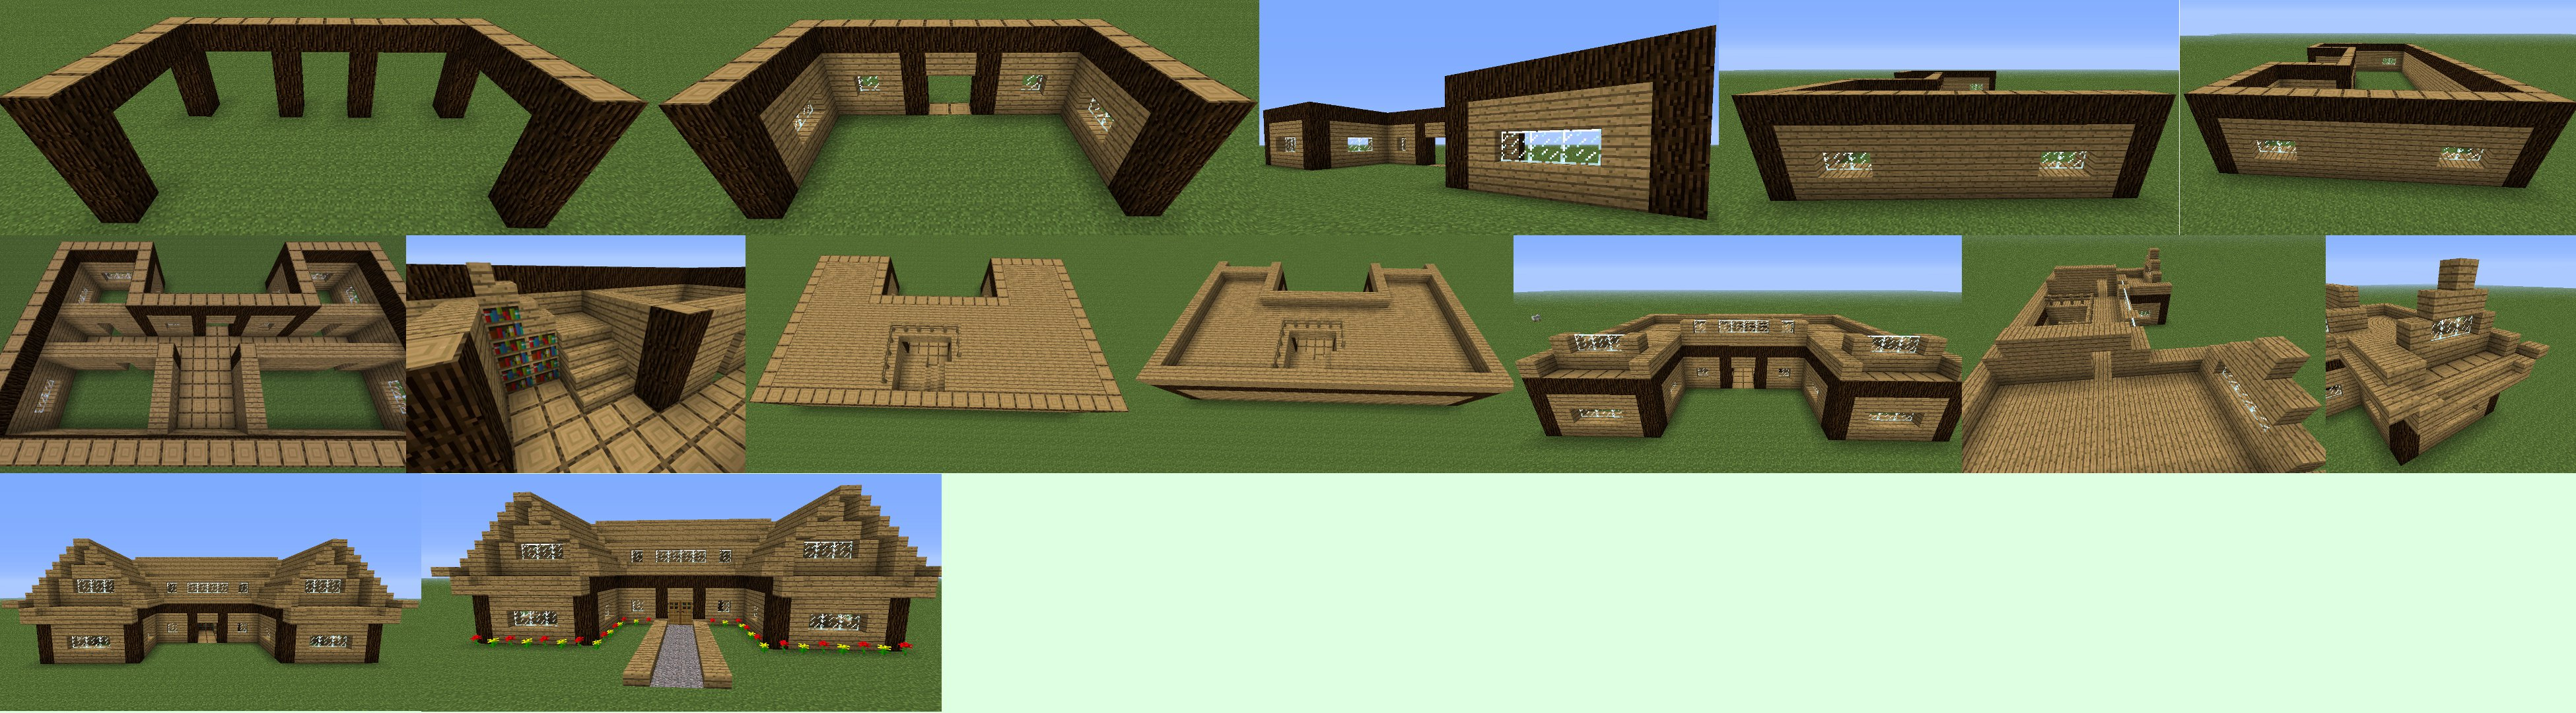 How to build a farm house in minecraft minecraft guides for How to make a house step by step